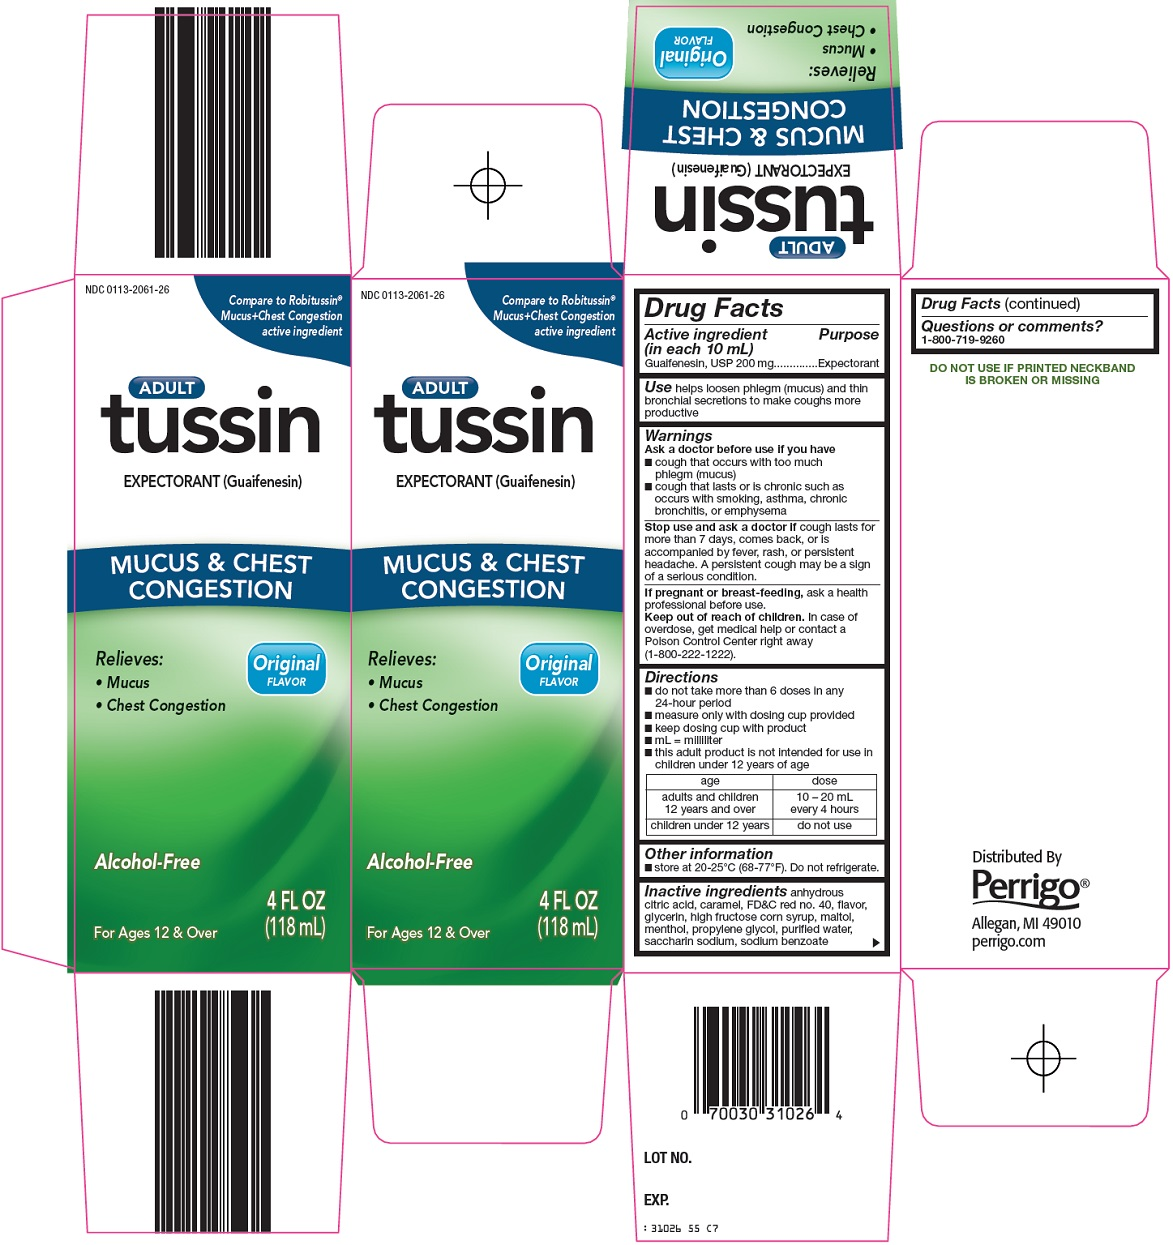 Tussin Image